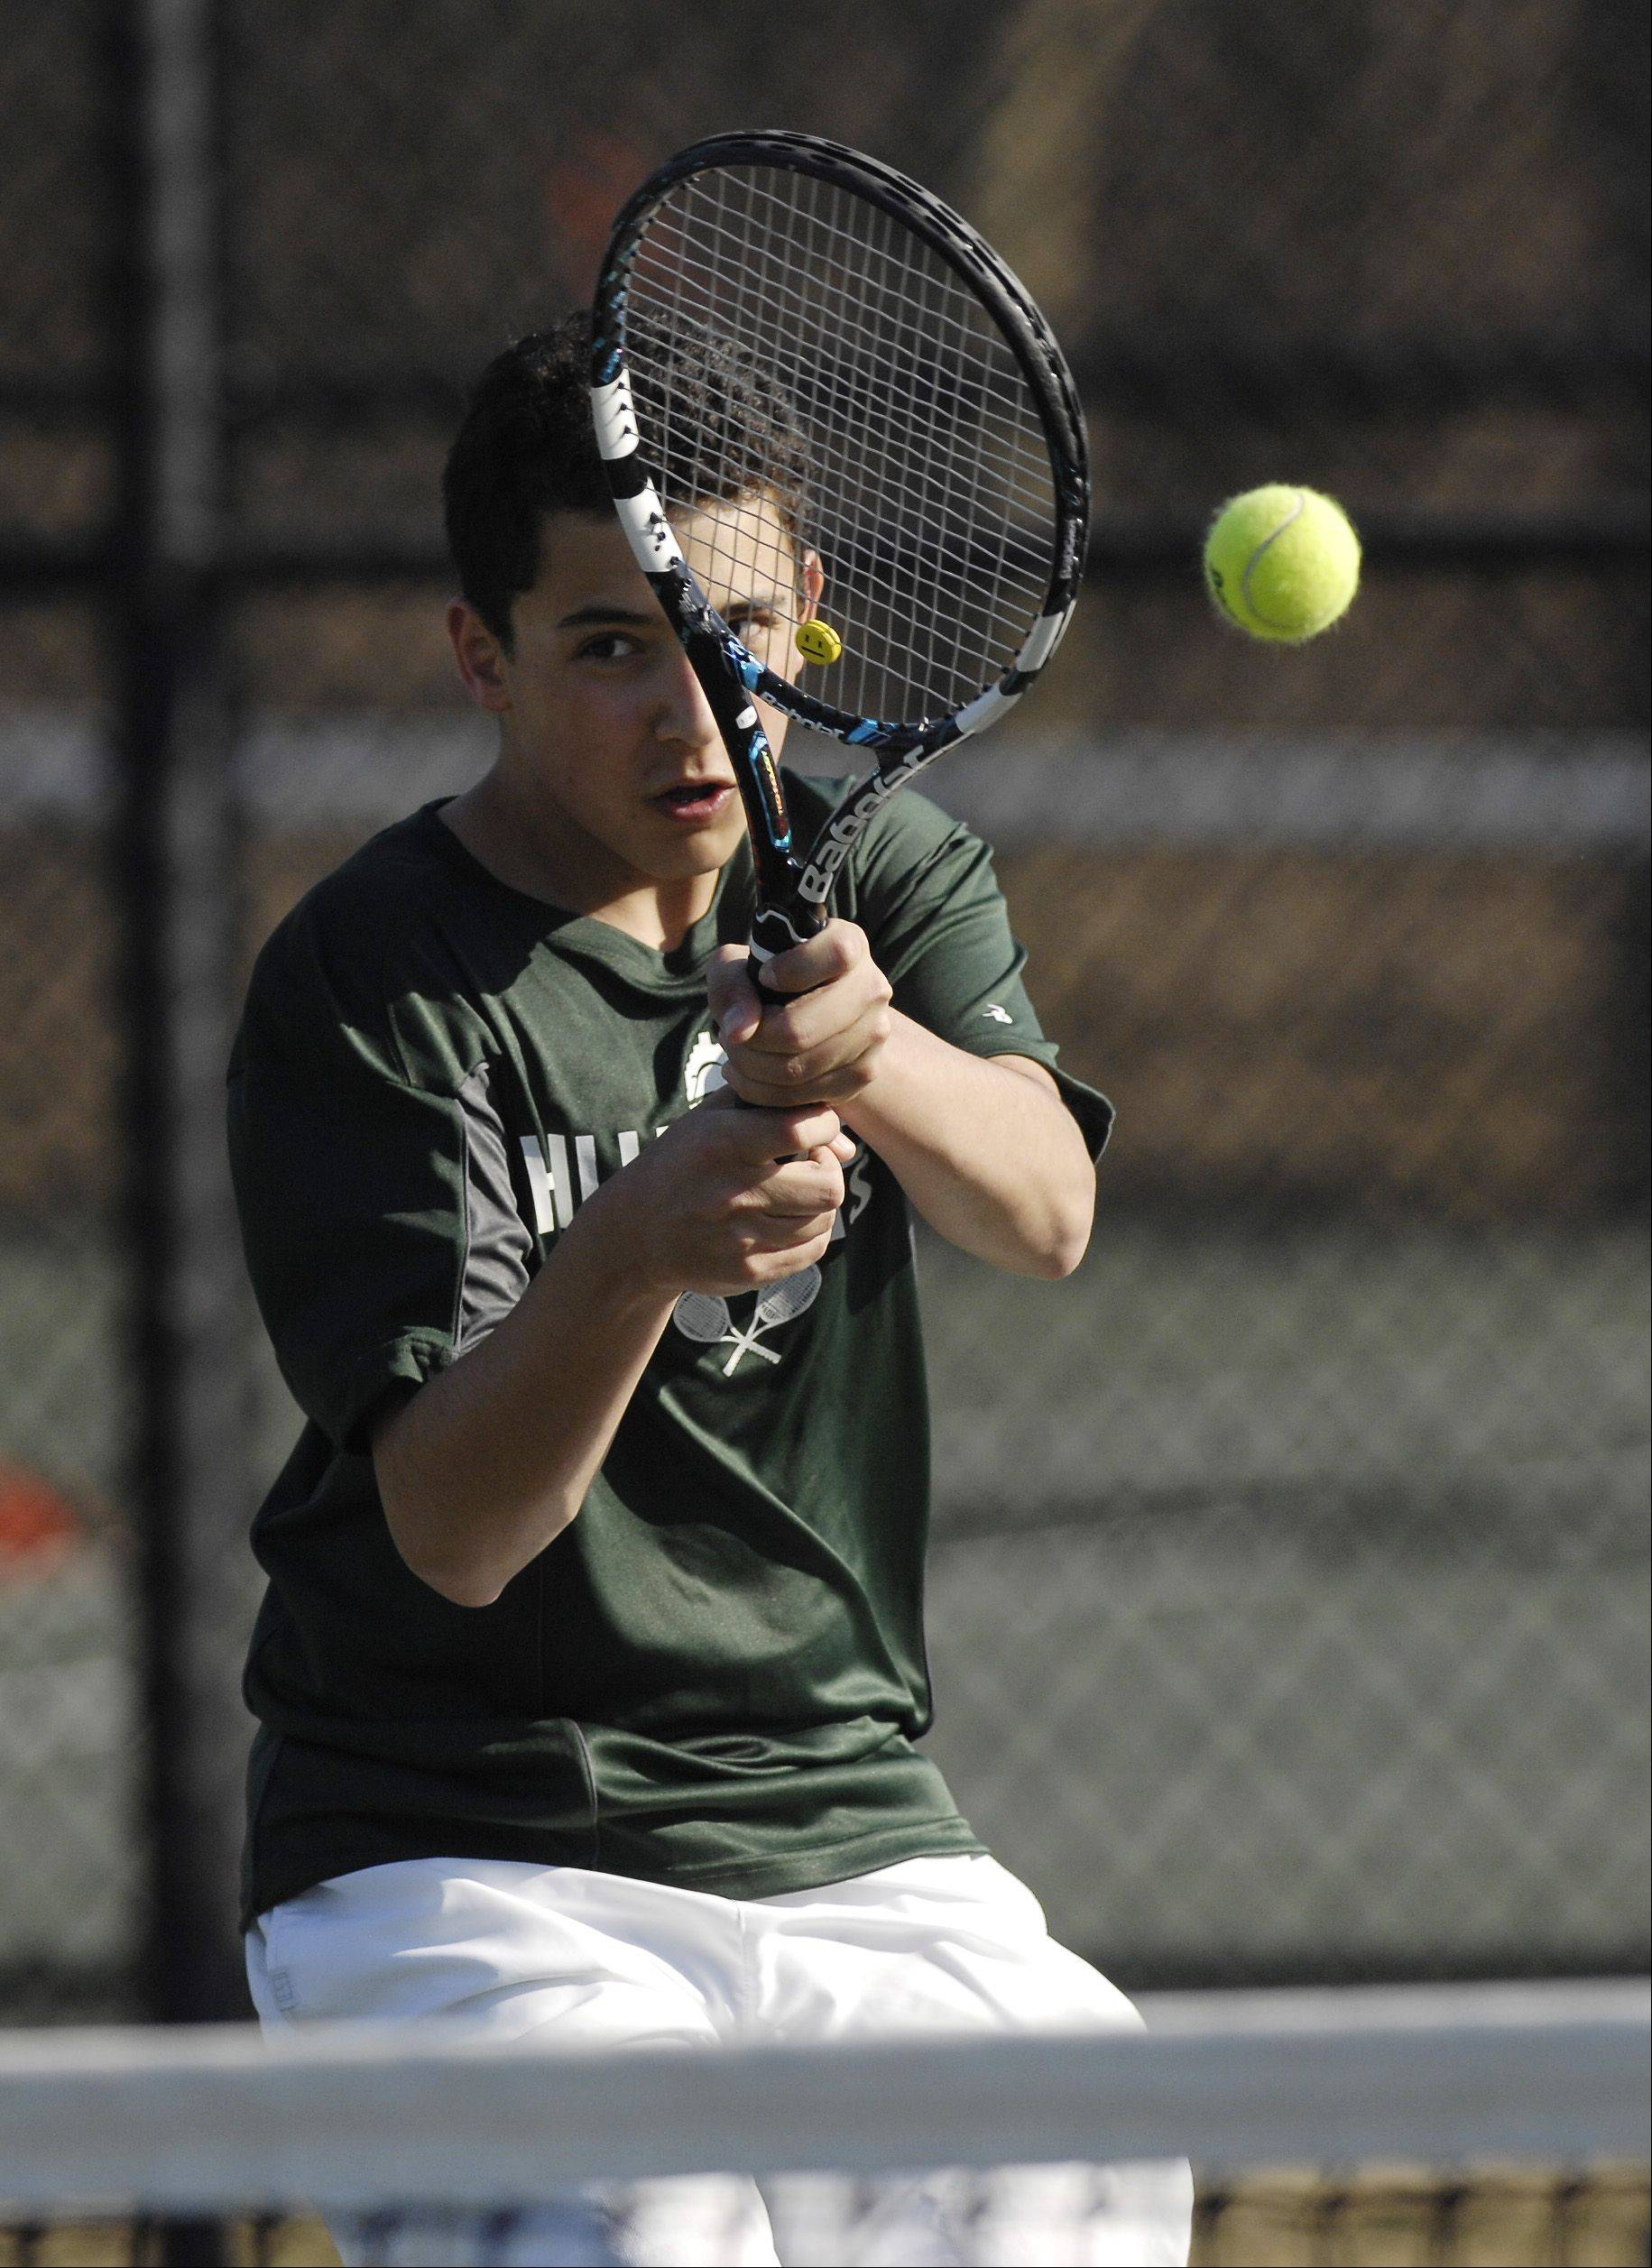 Glenbard West's Steven Hanna plays against Naperville North's Benny Li during Thursday's tennis match.